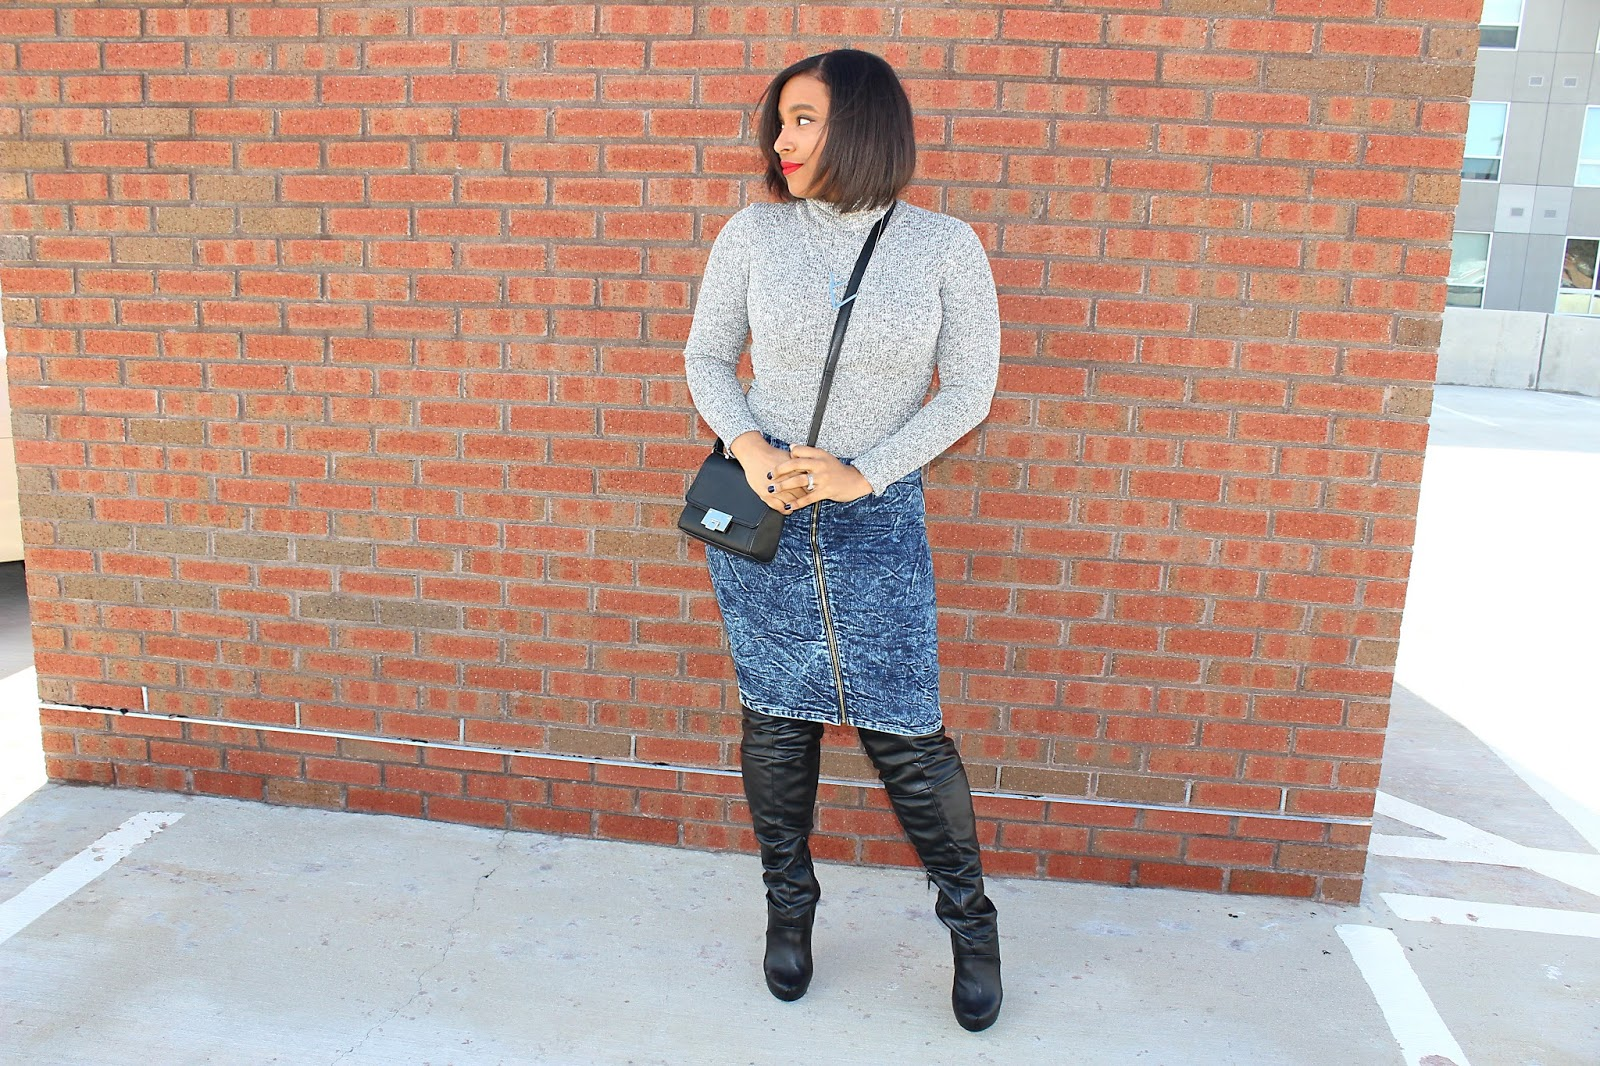 otk boots, over the knee boots, how to wear oak boots, midi skirt, blogger, fashion tips, boots